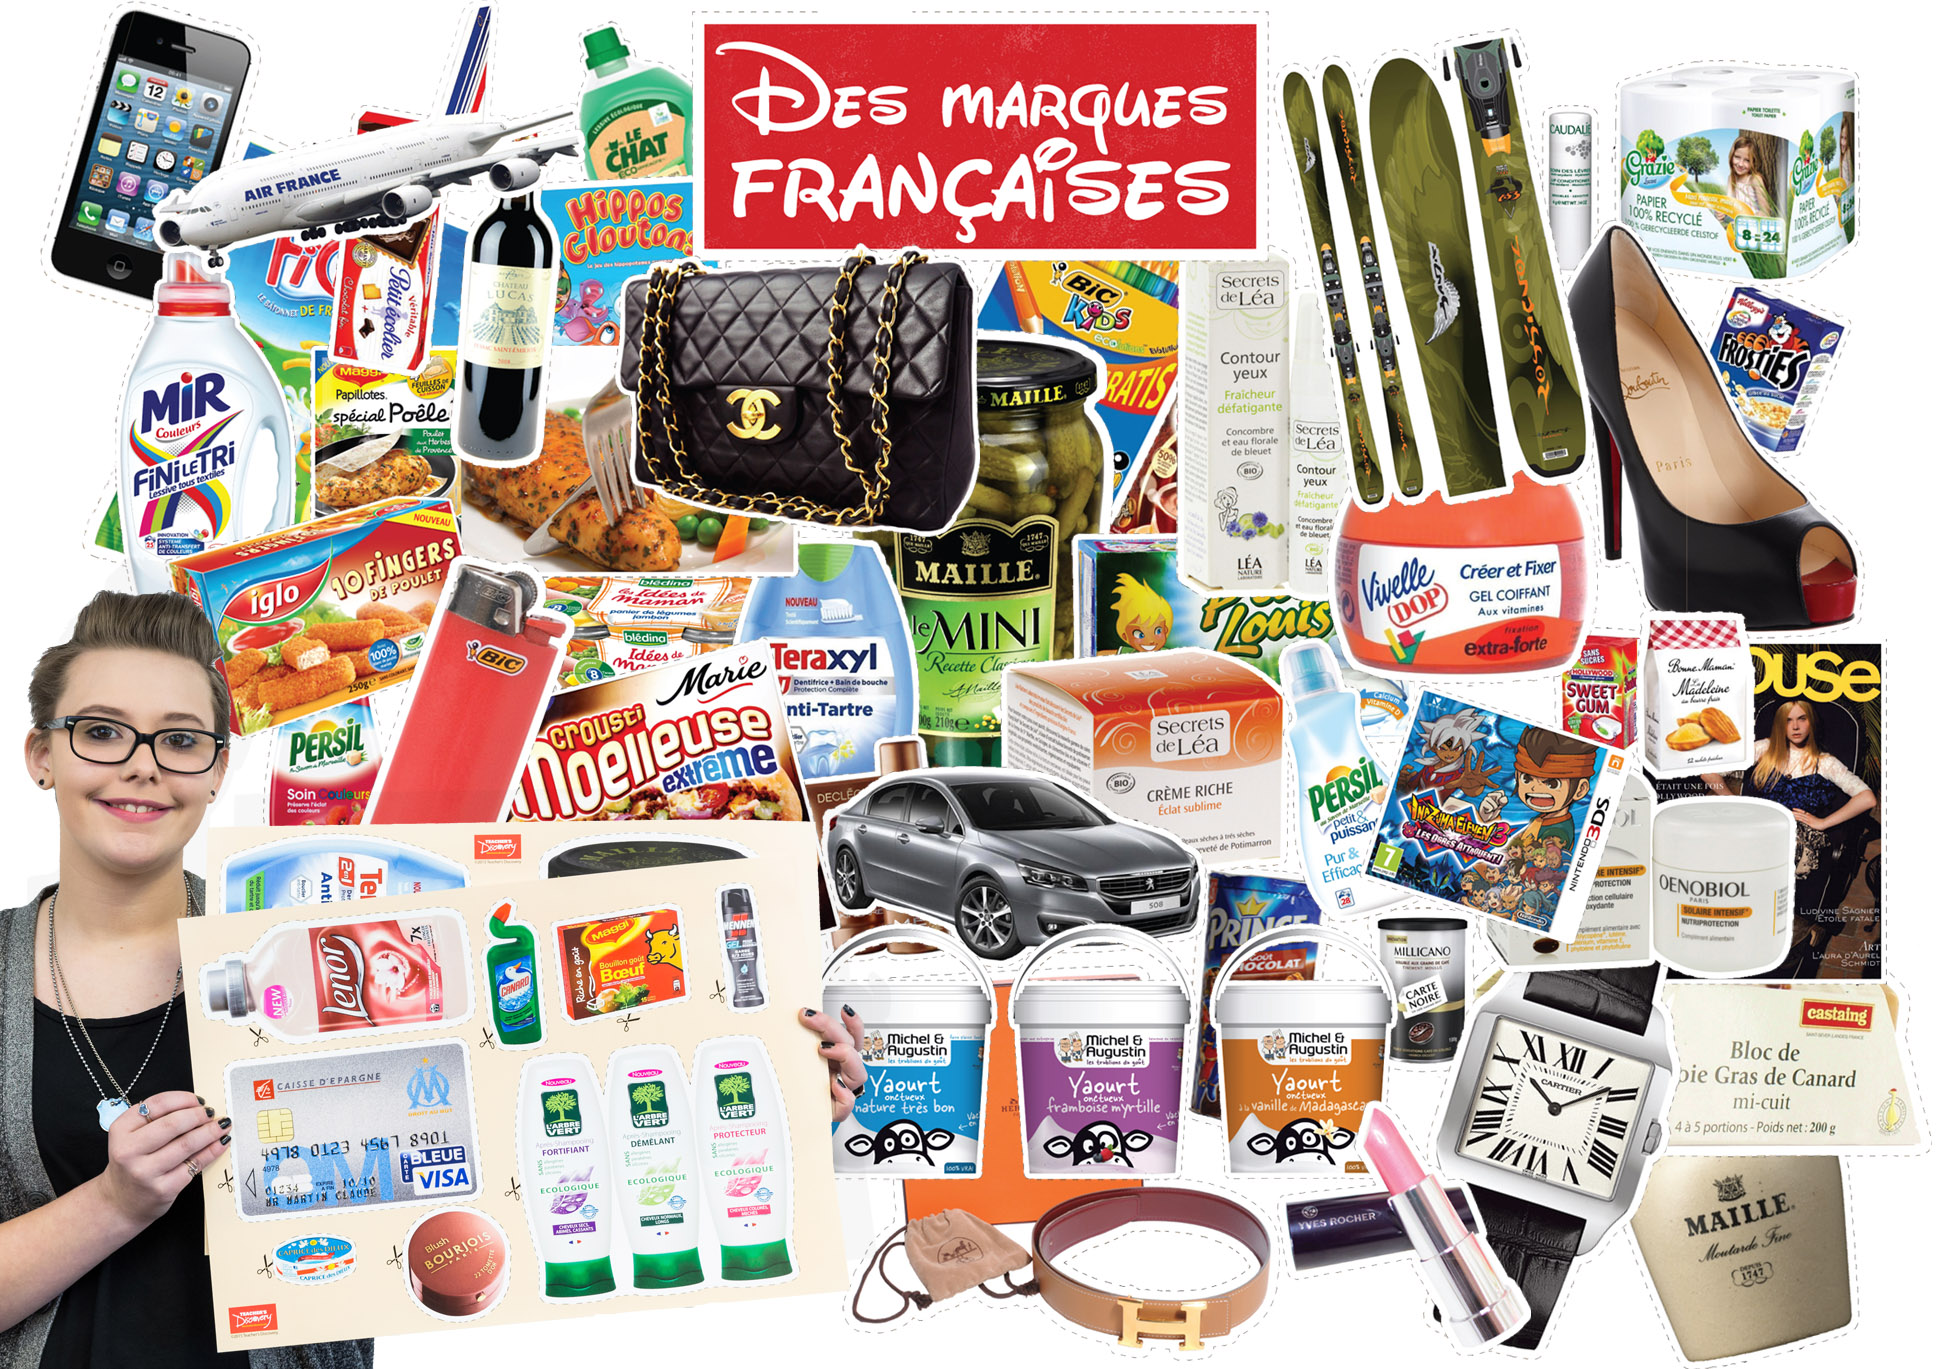 Des marques Francaises Bulletin Board Set